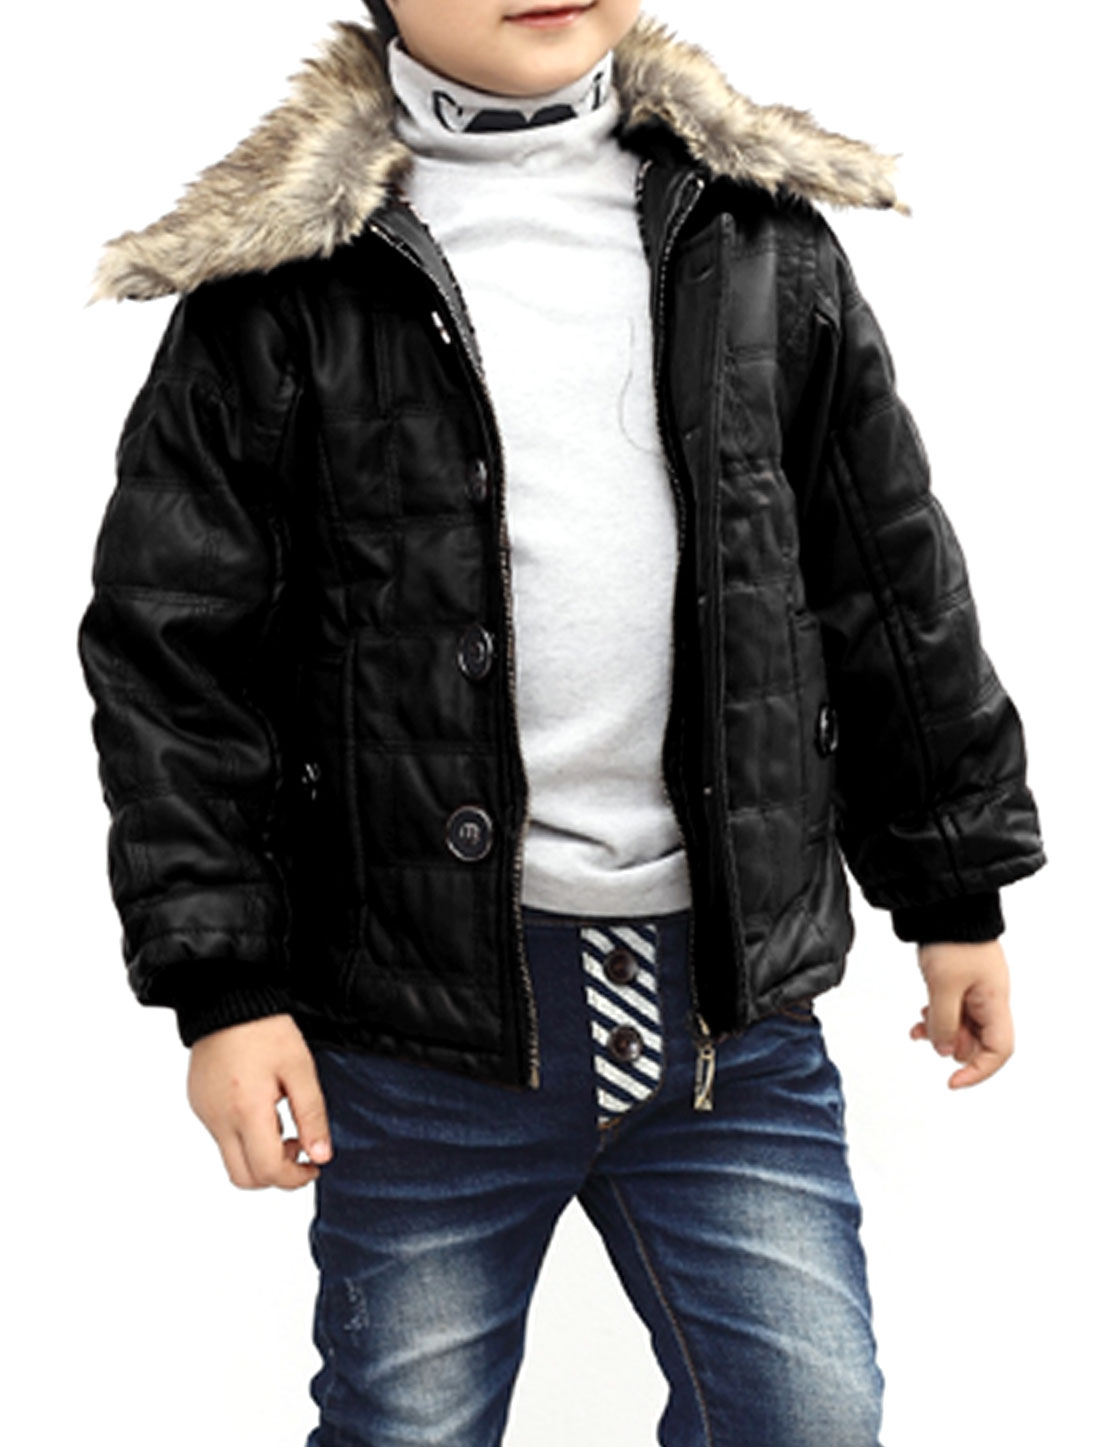 Boys Single Breasted Long Sleeve Button Decor Jacket Black 6